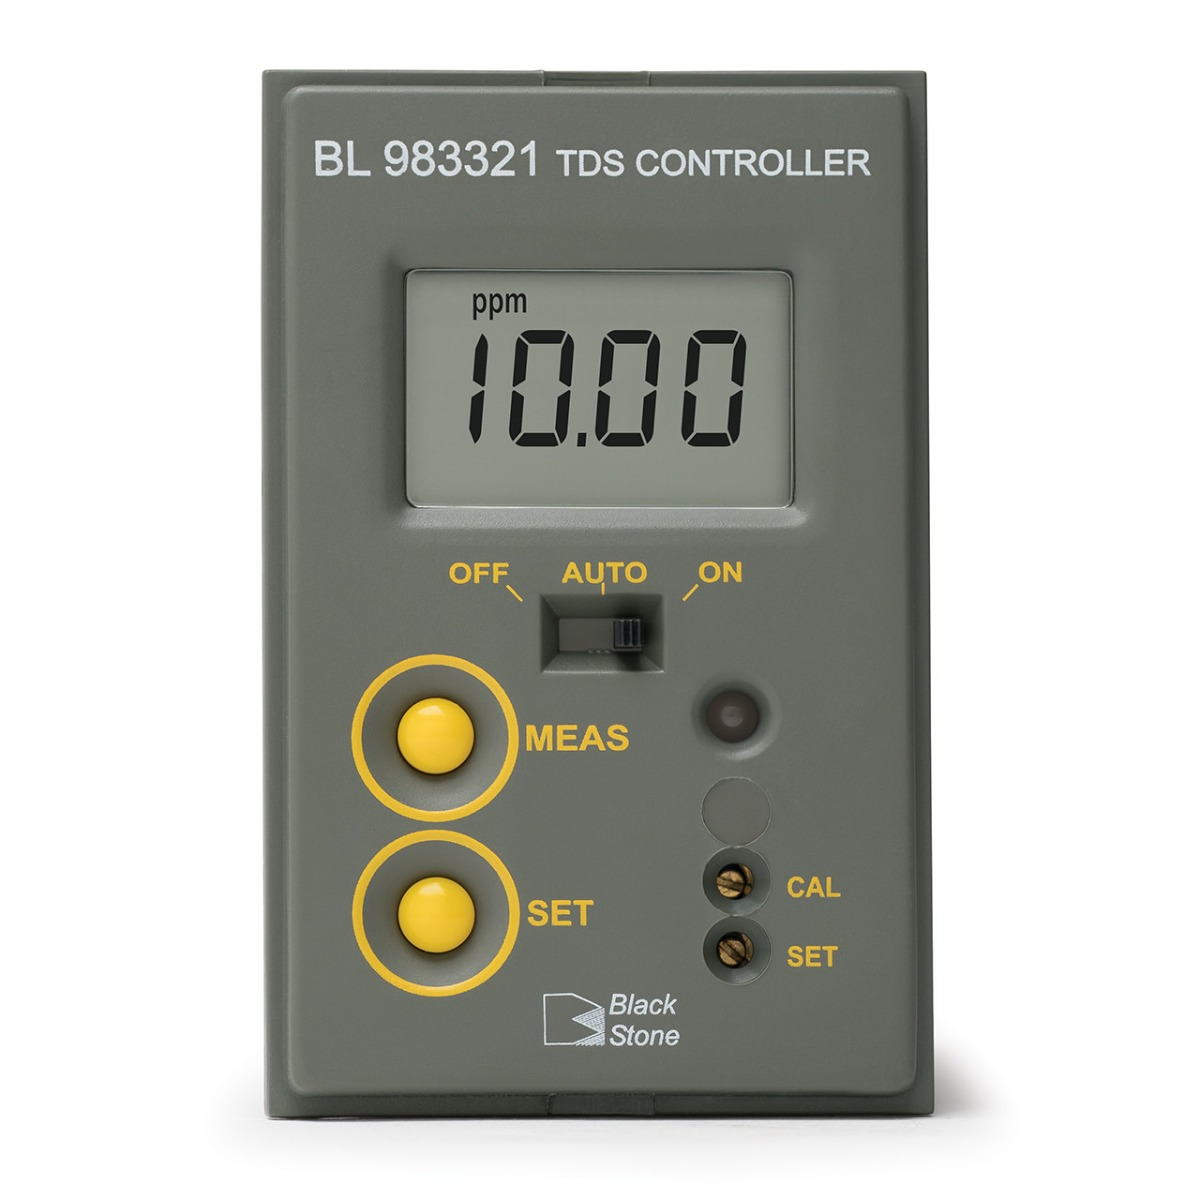 TDS Mini Controller (0.00 to 19.99 ppm) - BL983321